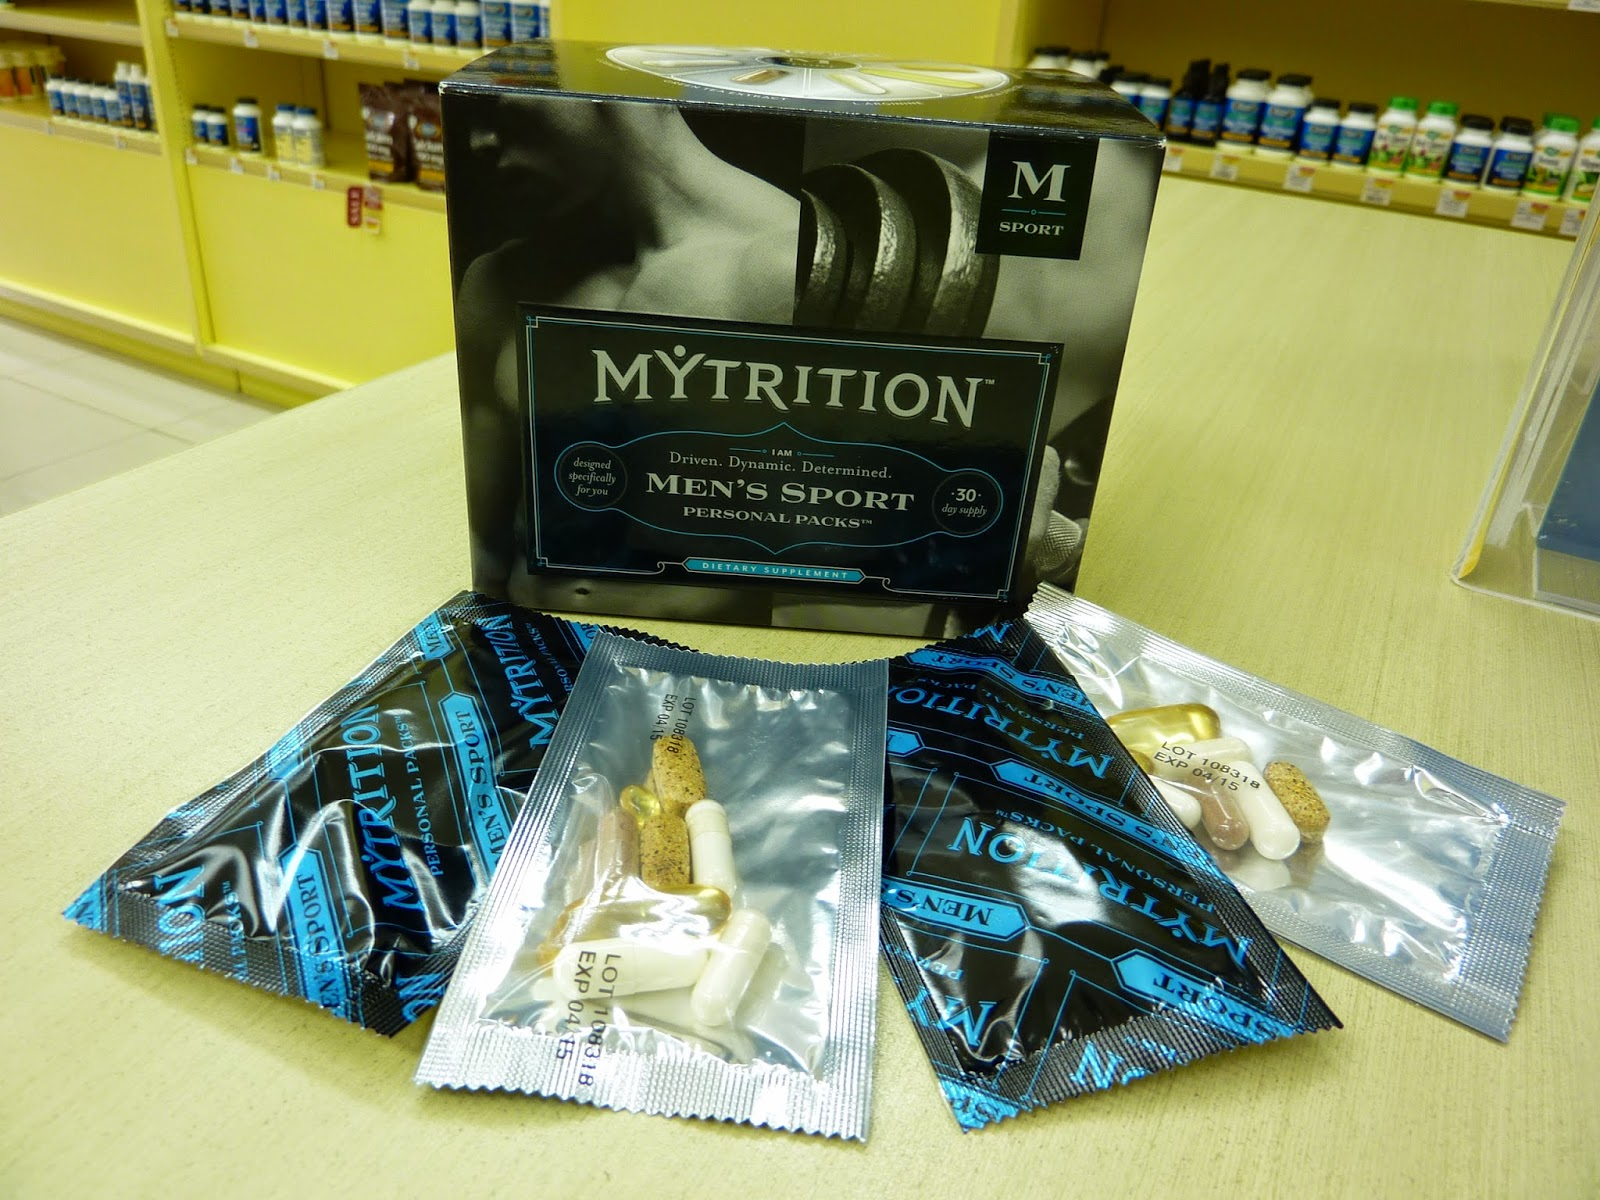 The Vitamin Shoppe MyTrition